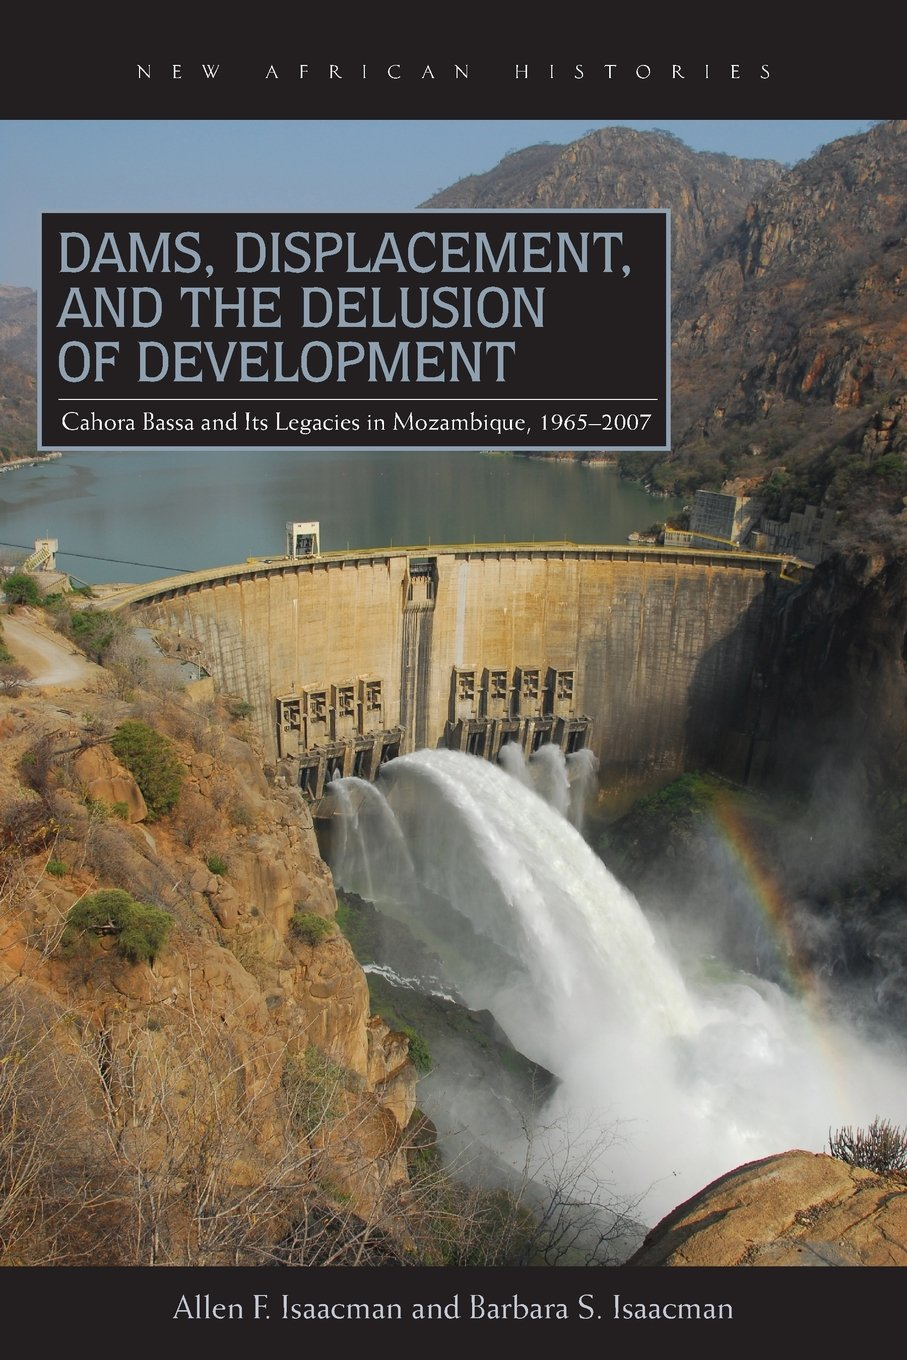 Dams, Displacement and the Delusion of Development